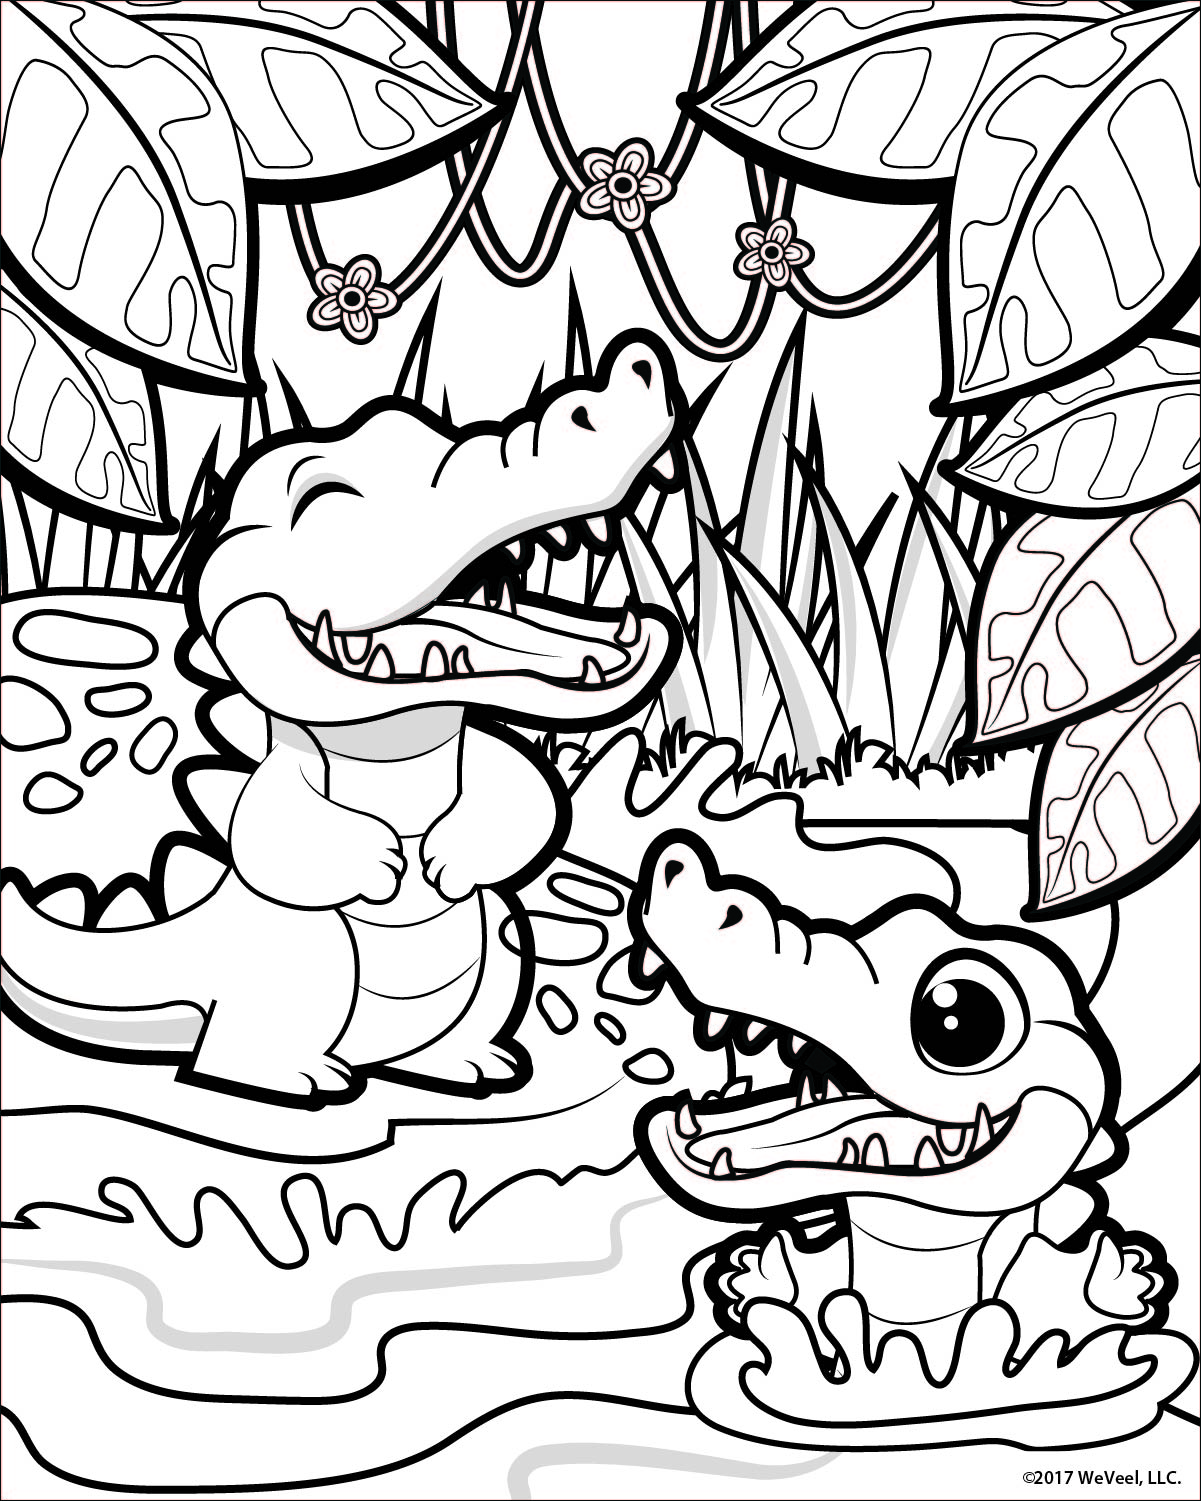 Coloring Pages: Jungle